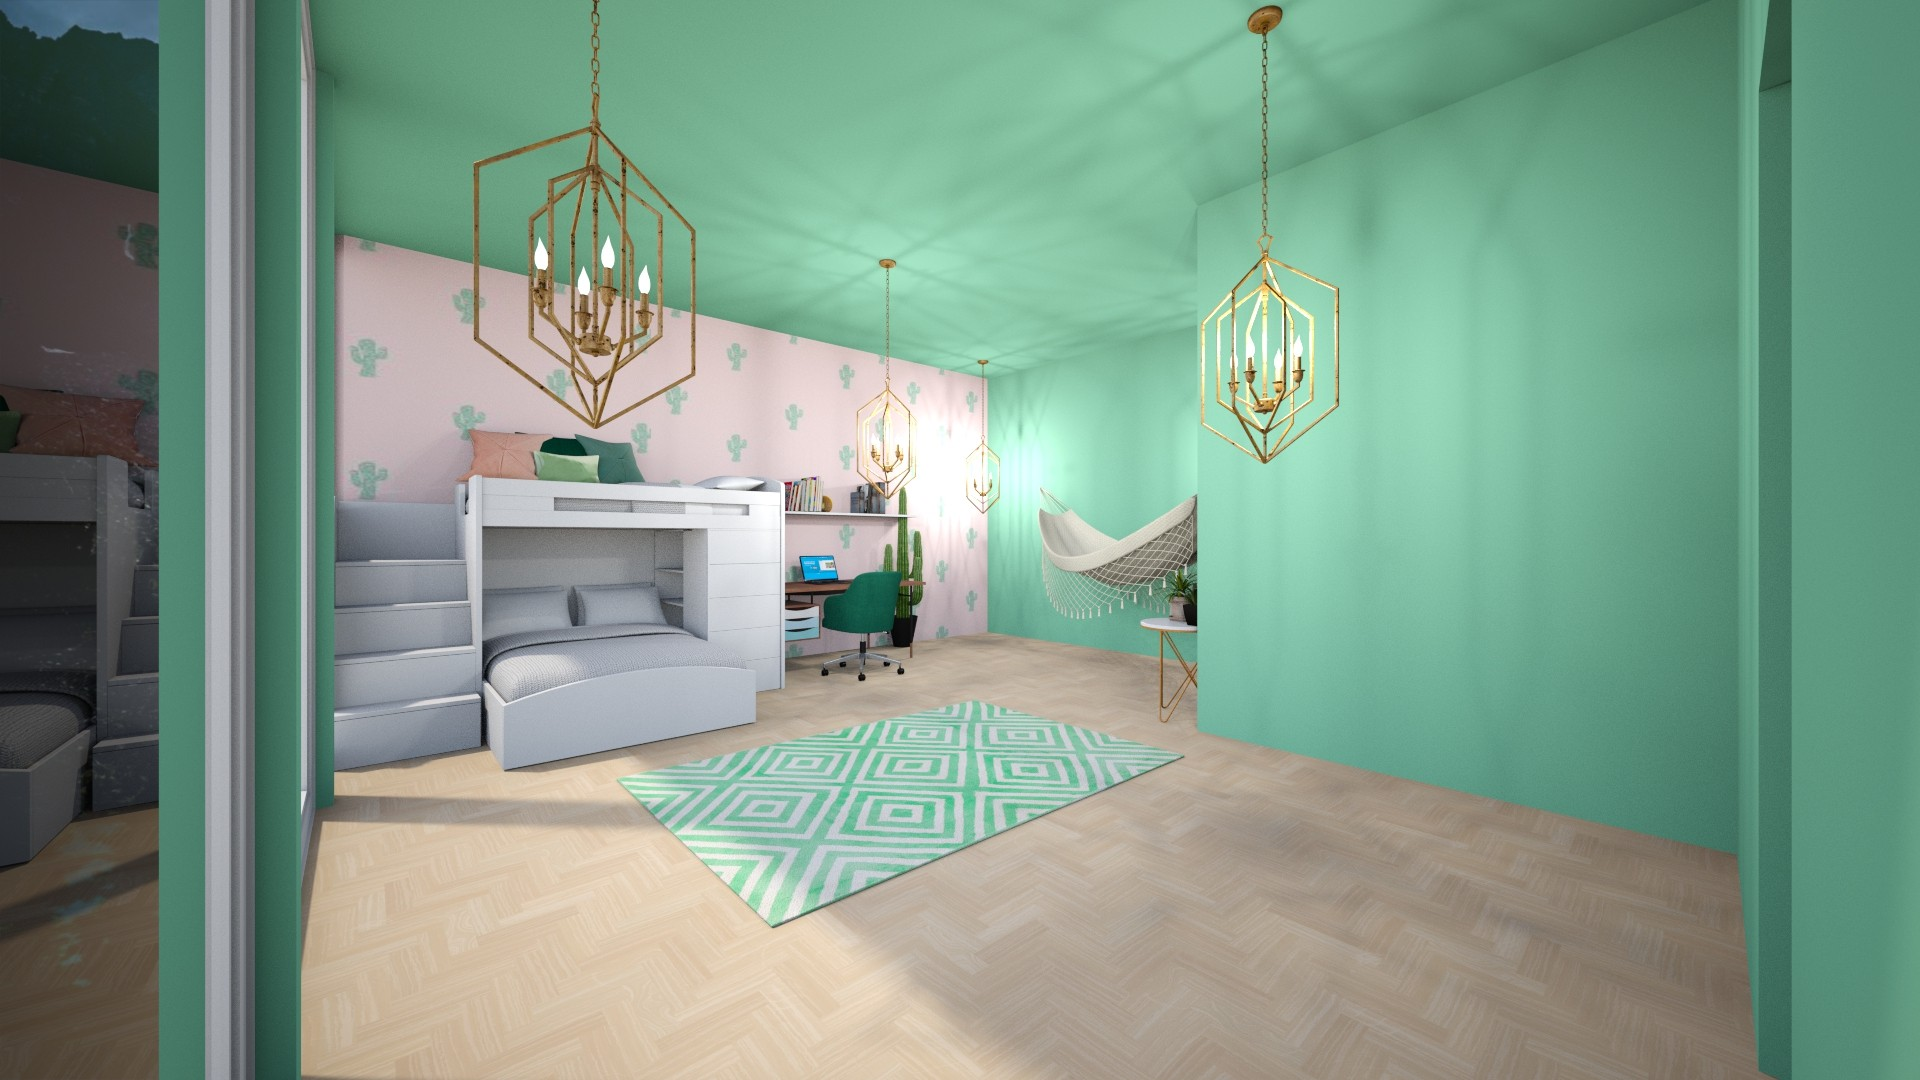 plant aesthetic room 2 - Kids room  - by AM_POTAT